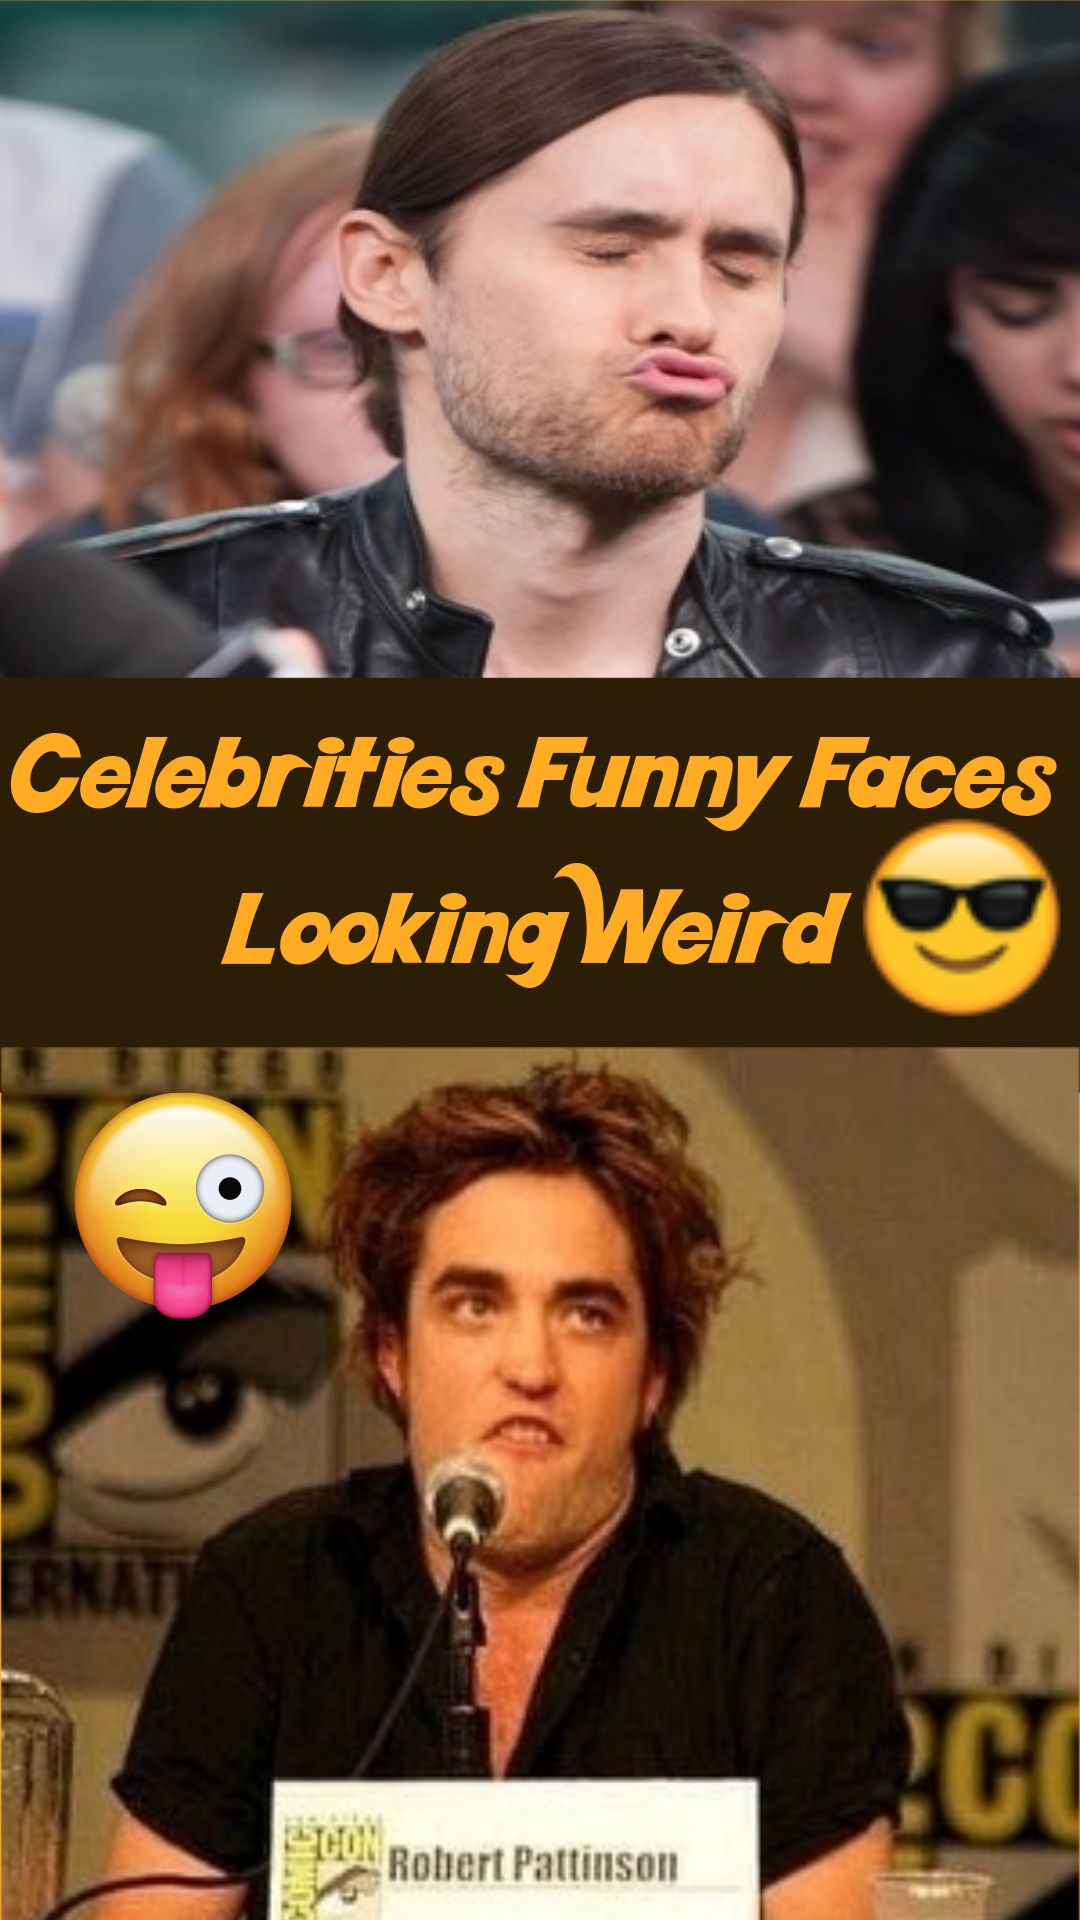 Celebrities Funny Faces Looking Weird Celebrity funny